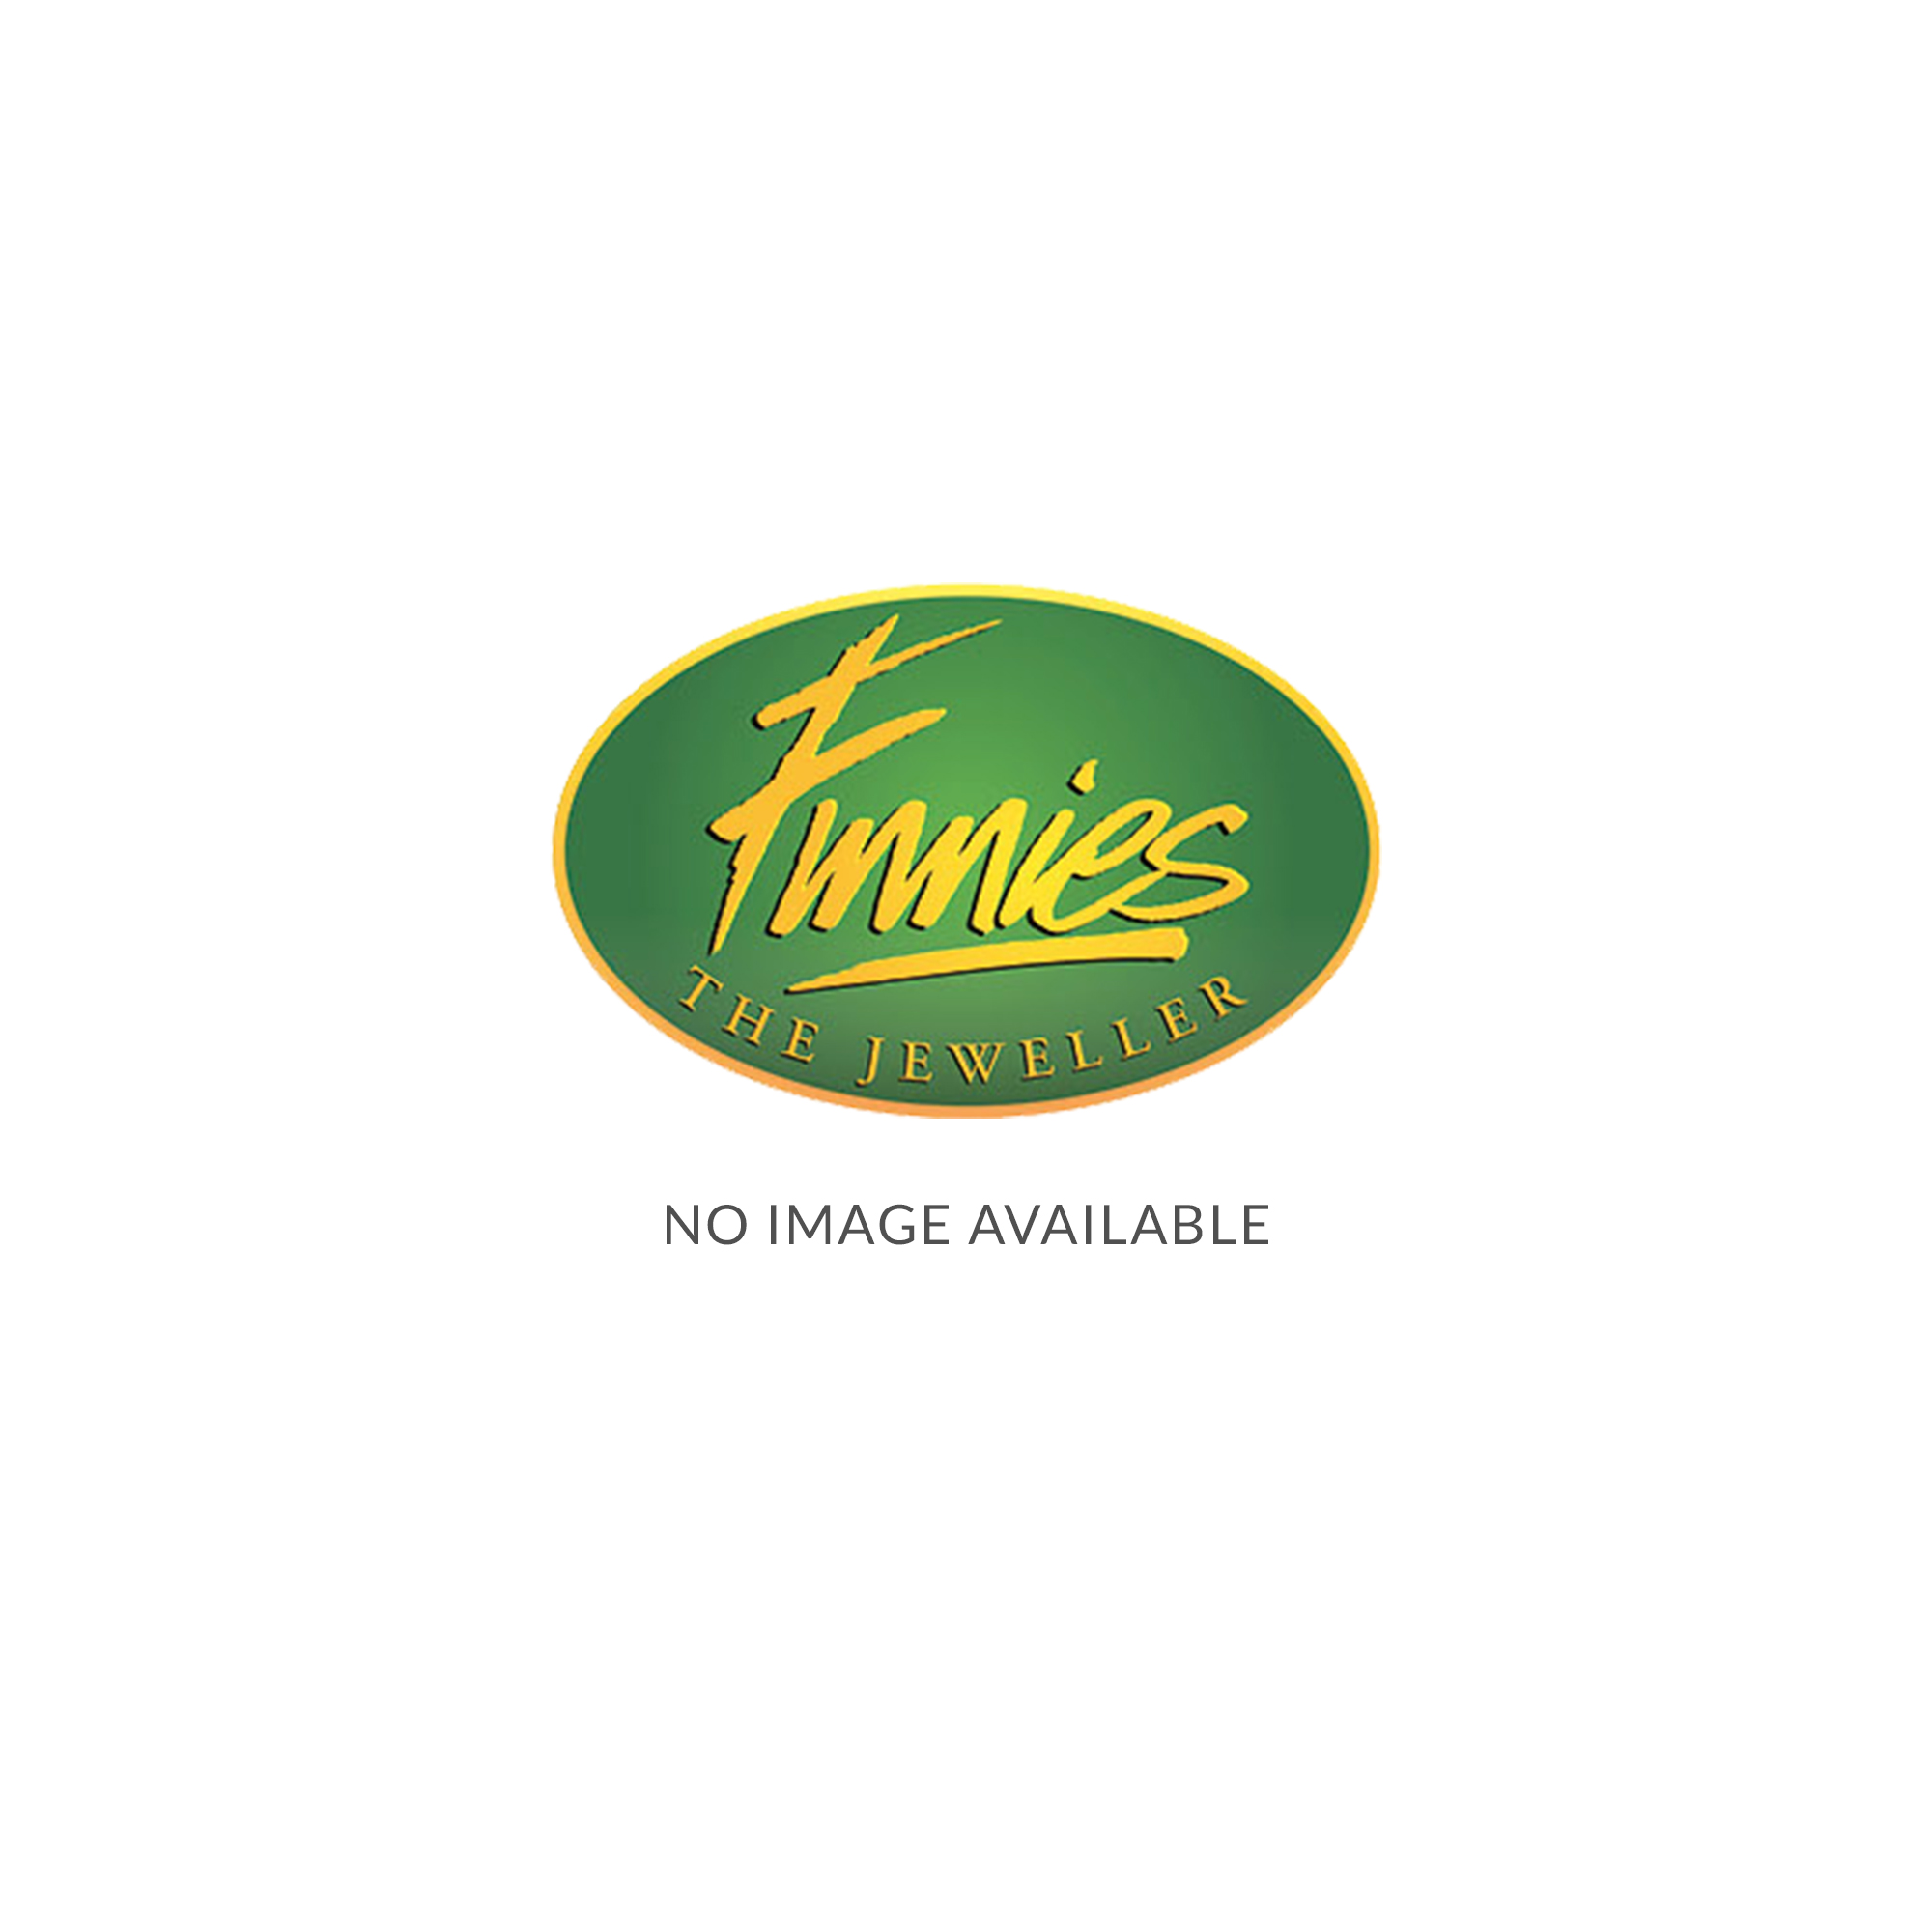 Finnies The Jewellers 9ct White Gold Double Ball Stud Earrings